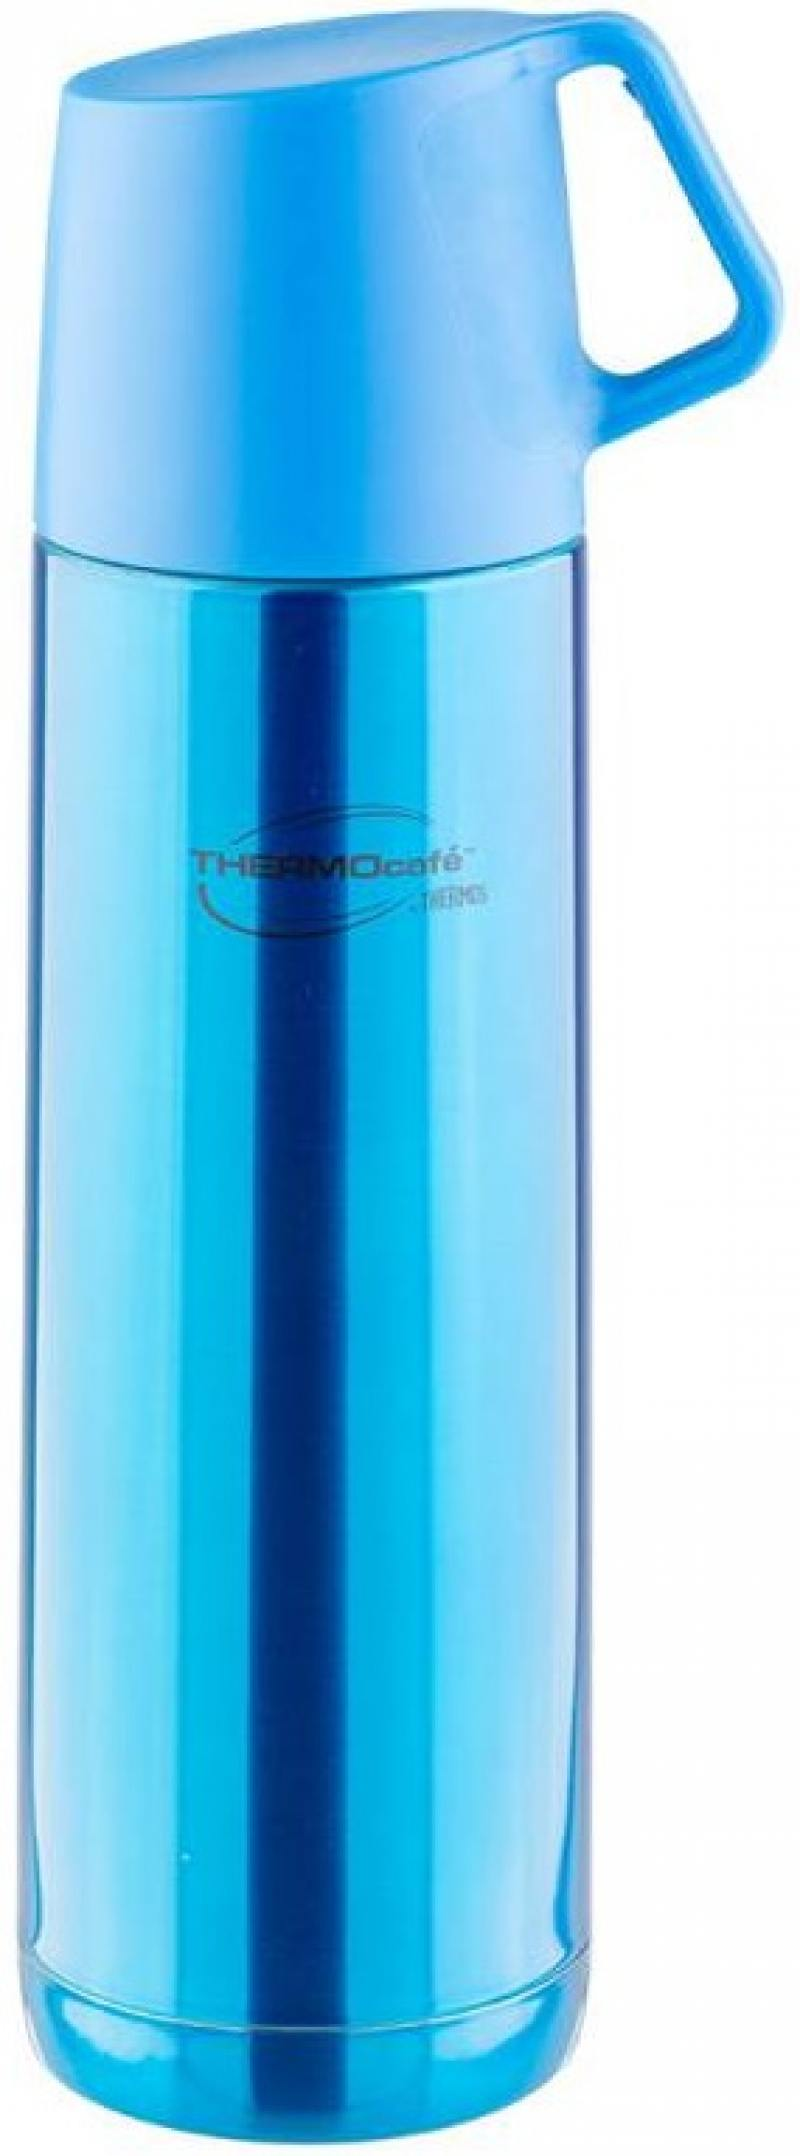 Термос Thermos THERMOcafe JF-50 0.5л синий 271457 термос thermos thermos 1 8l ncb 18b 1 8л